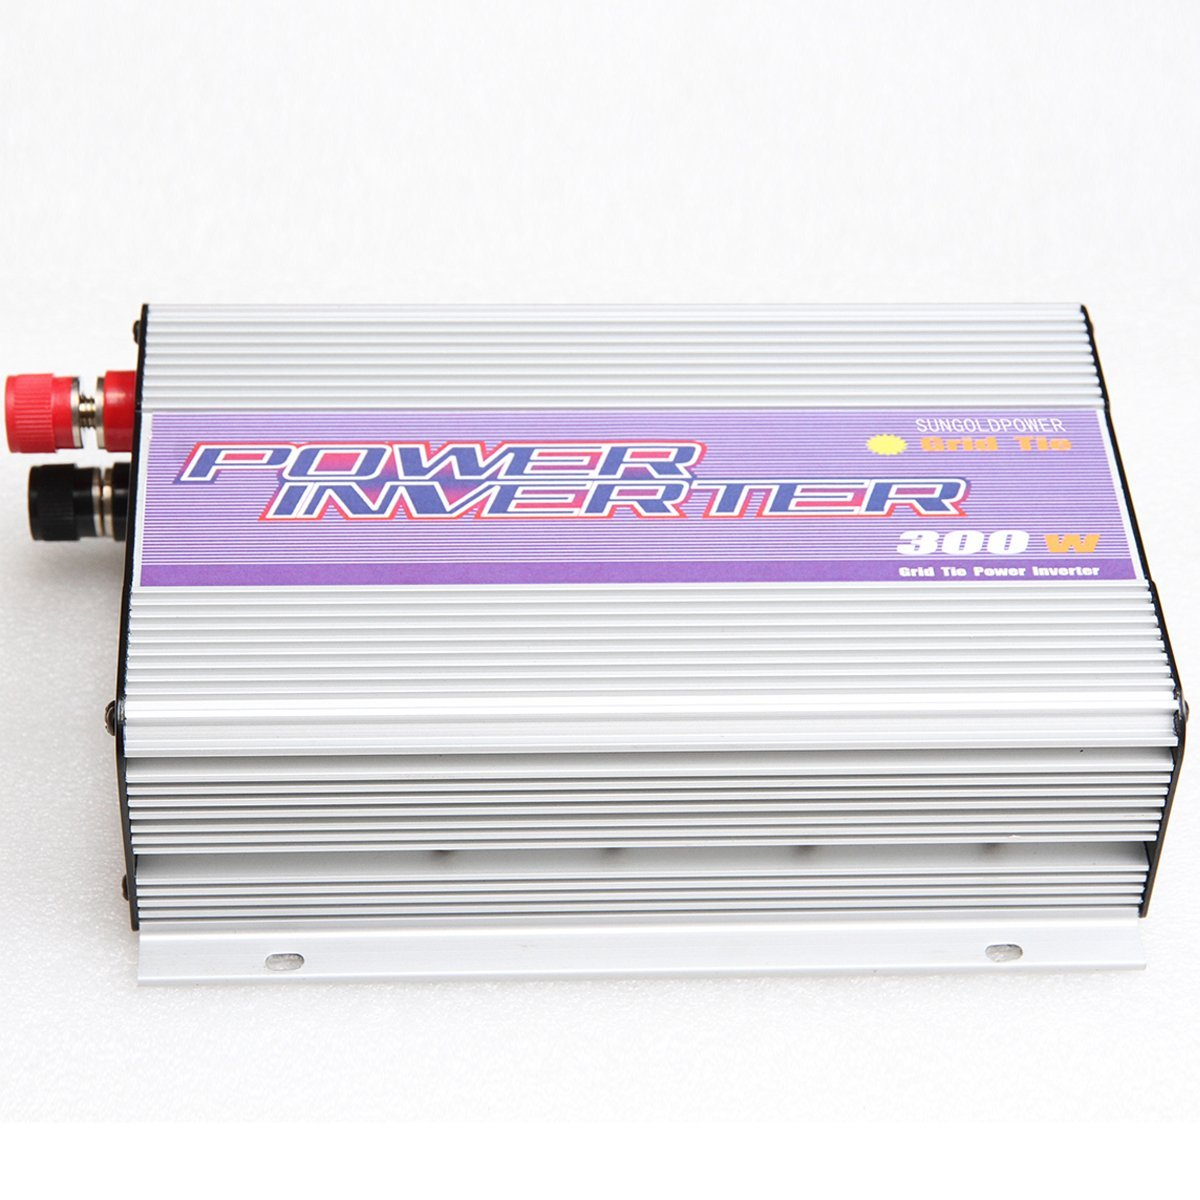 Cheap 300w inverter circuit diagram find 300w inverter circuit get quotations gtpower new 300w solar grid tie power inverter solar panel dc 22v 60v ac 90v asfbconference2016 Gallery